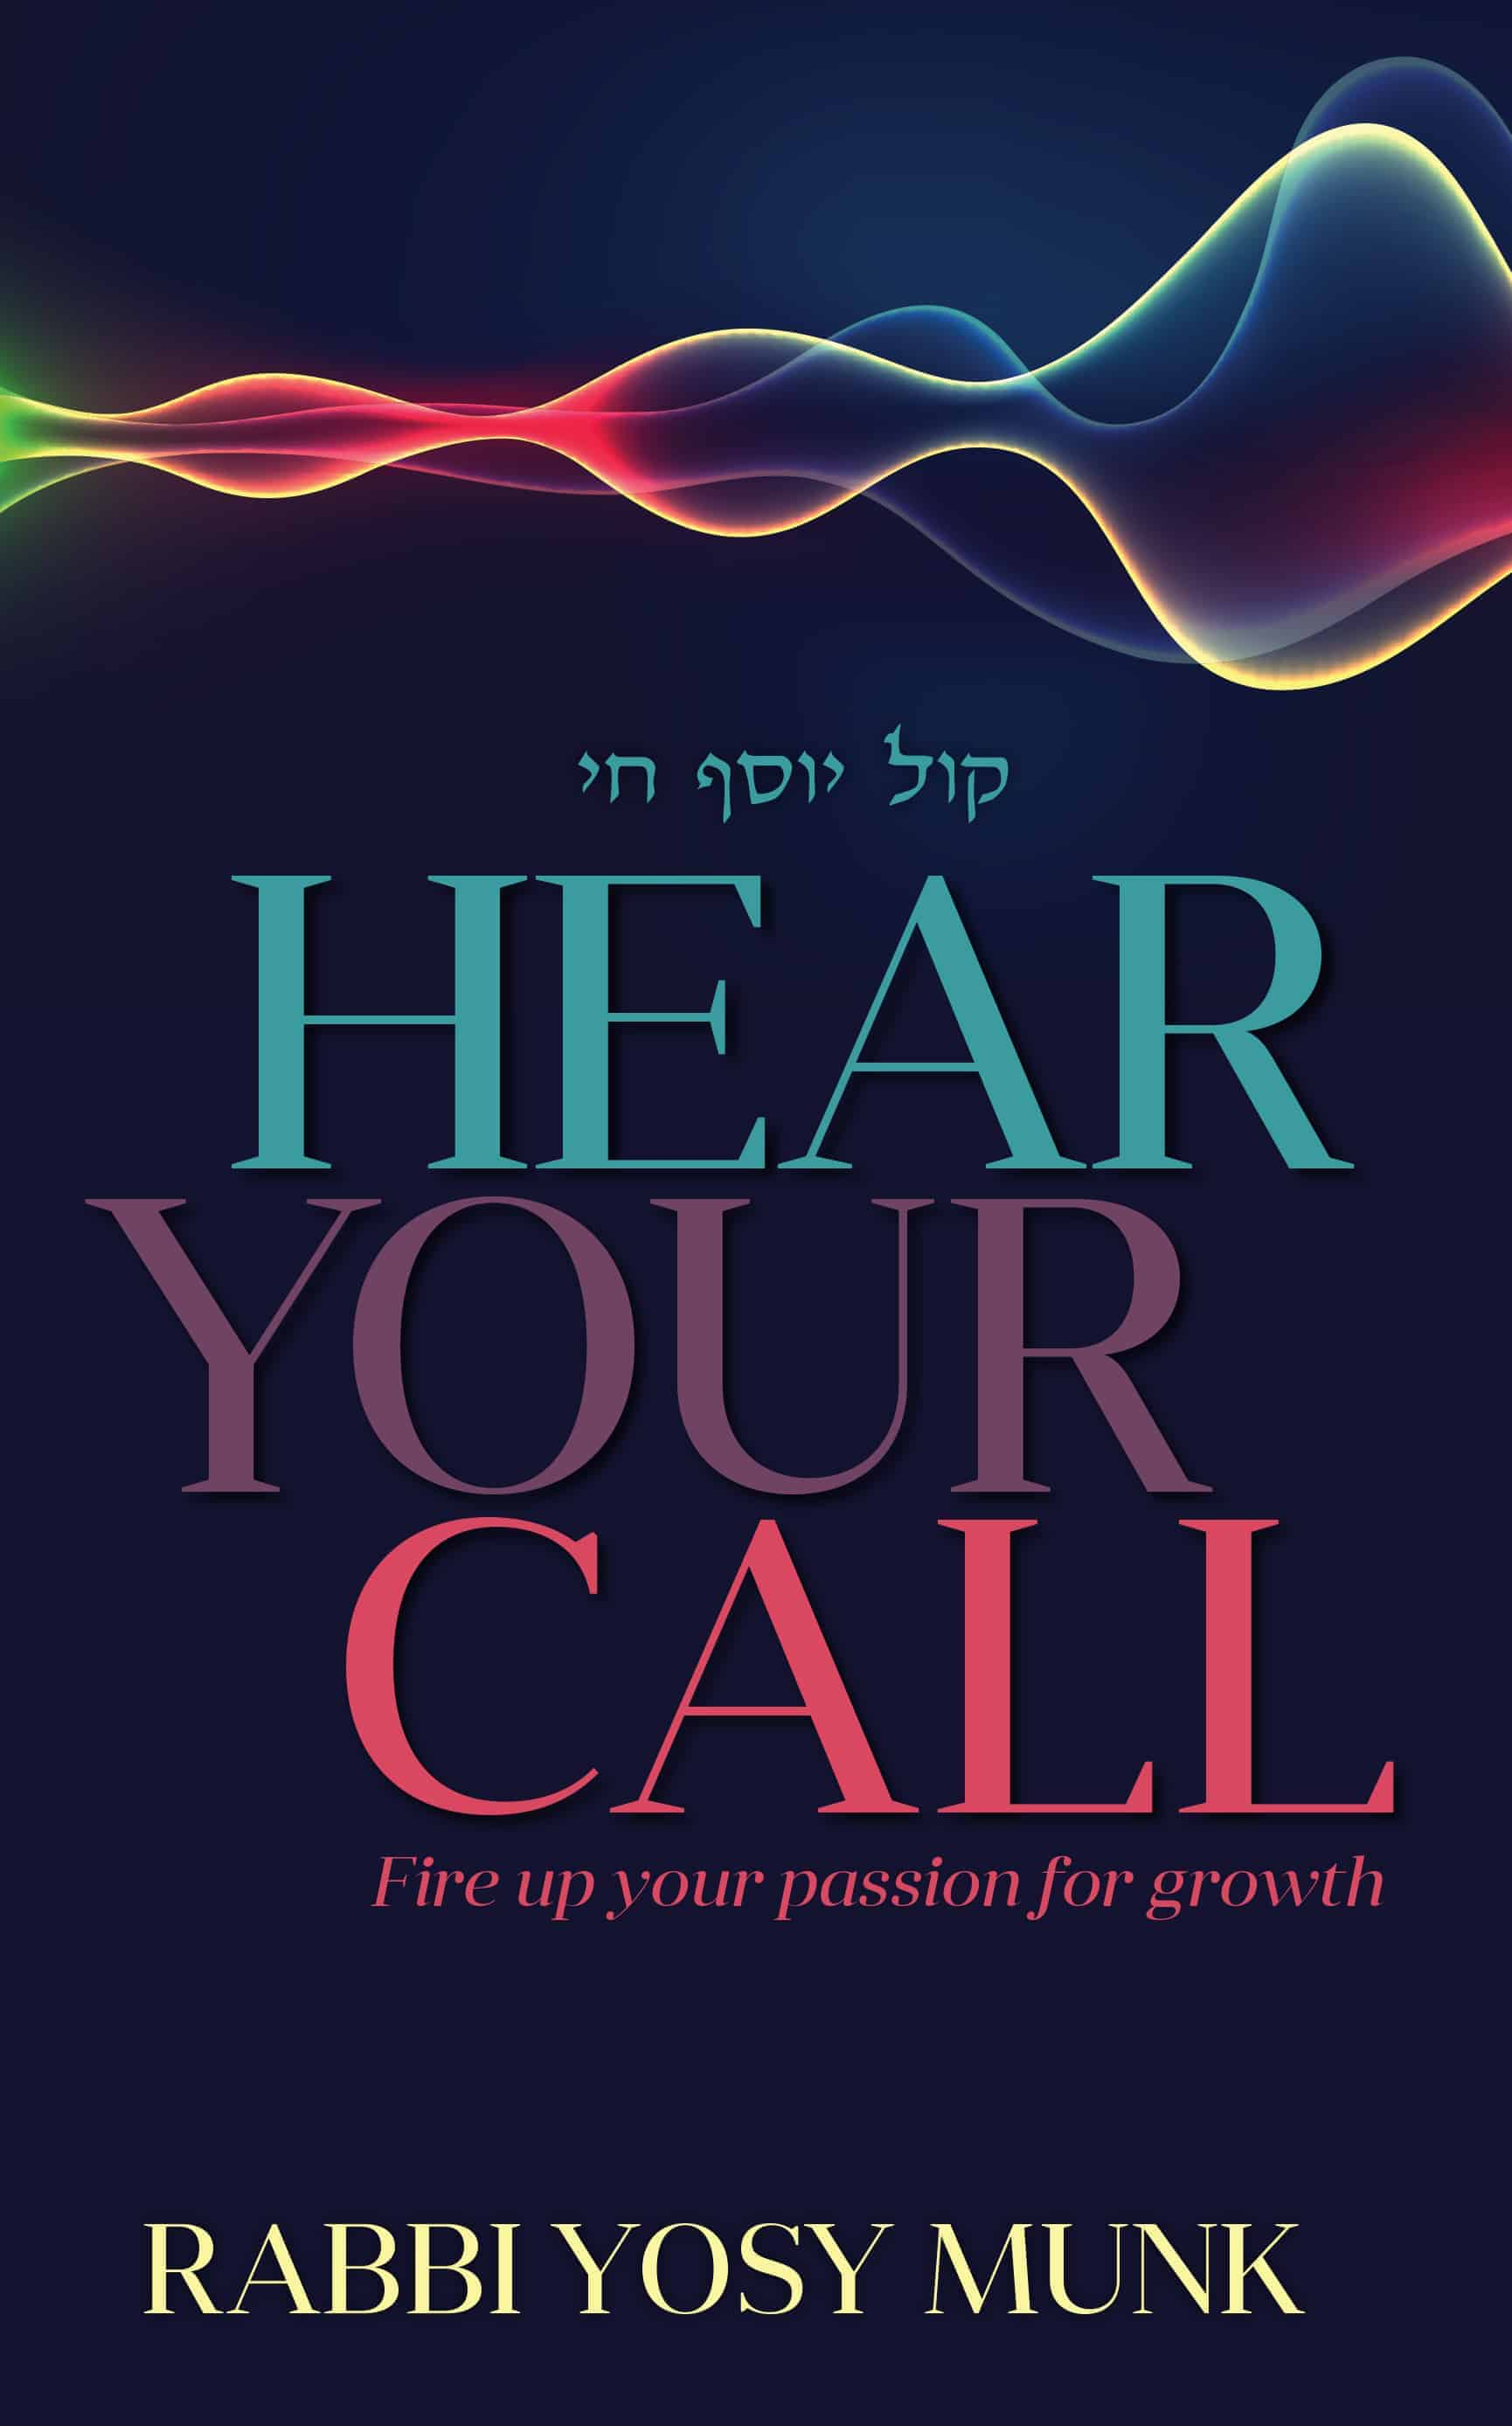 Hear Your Call